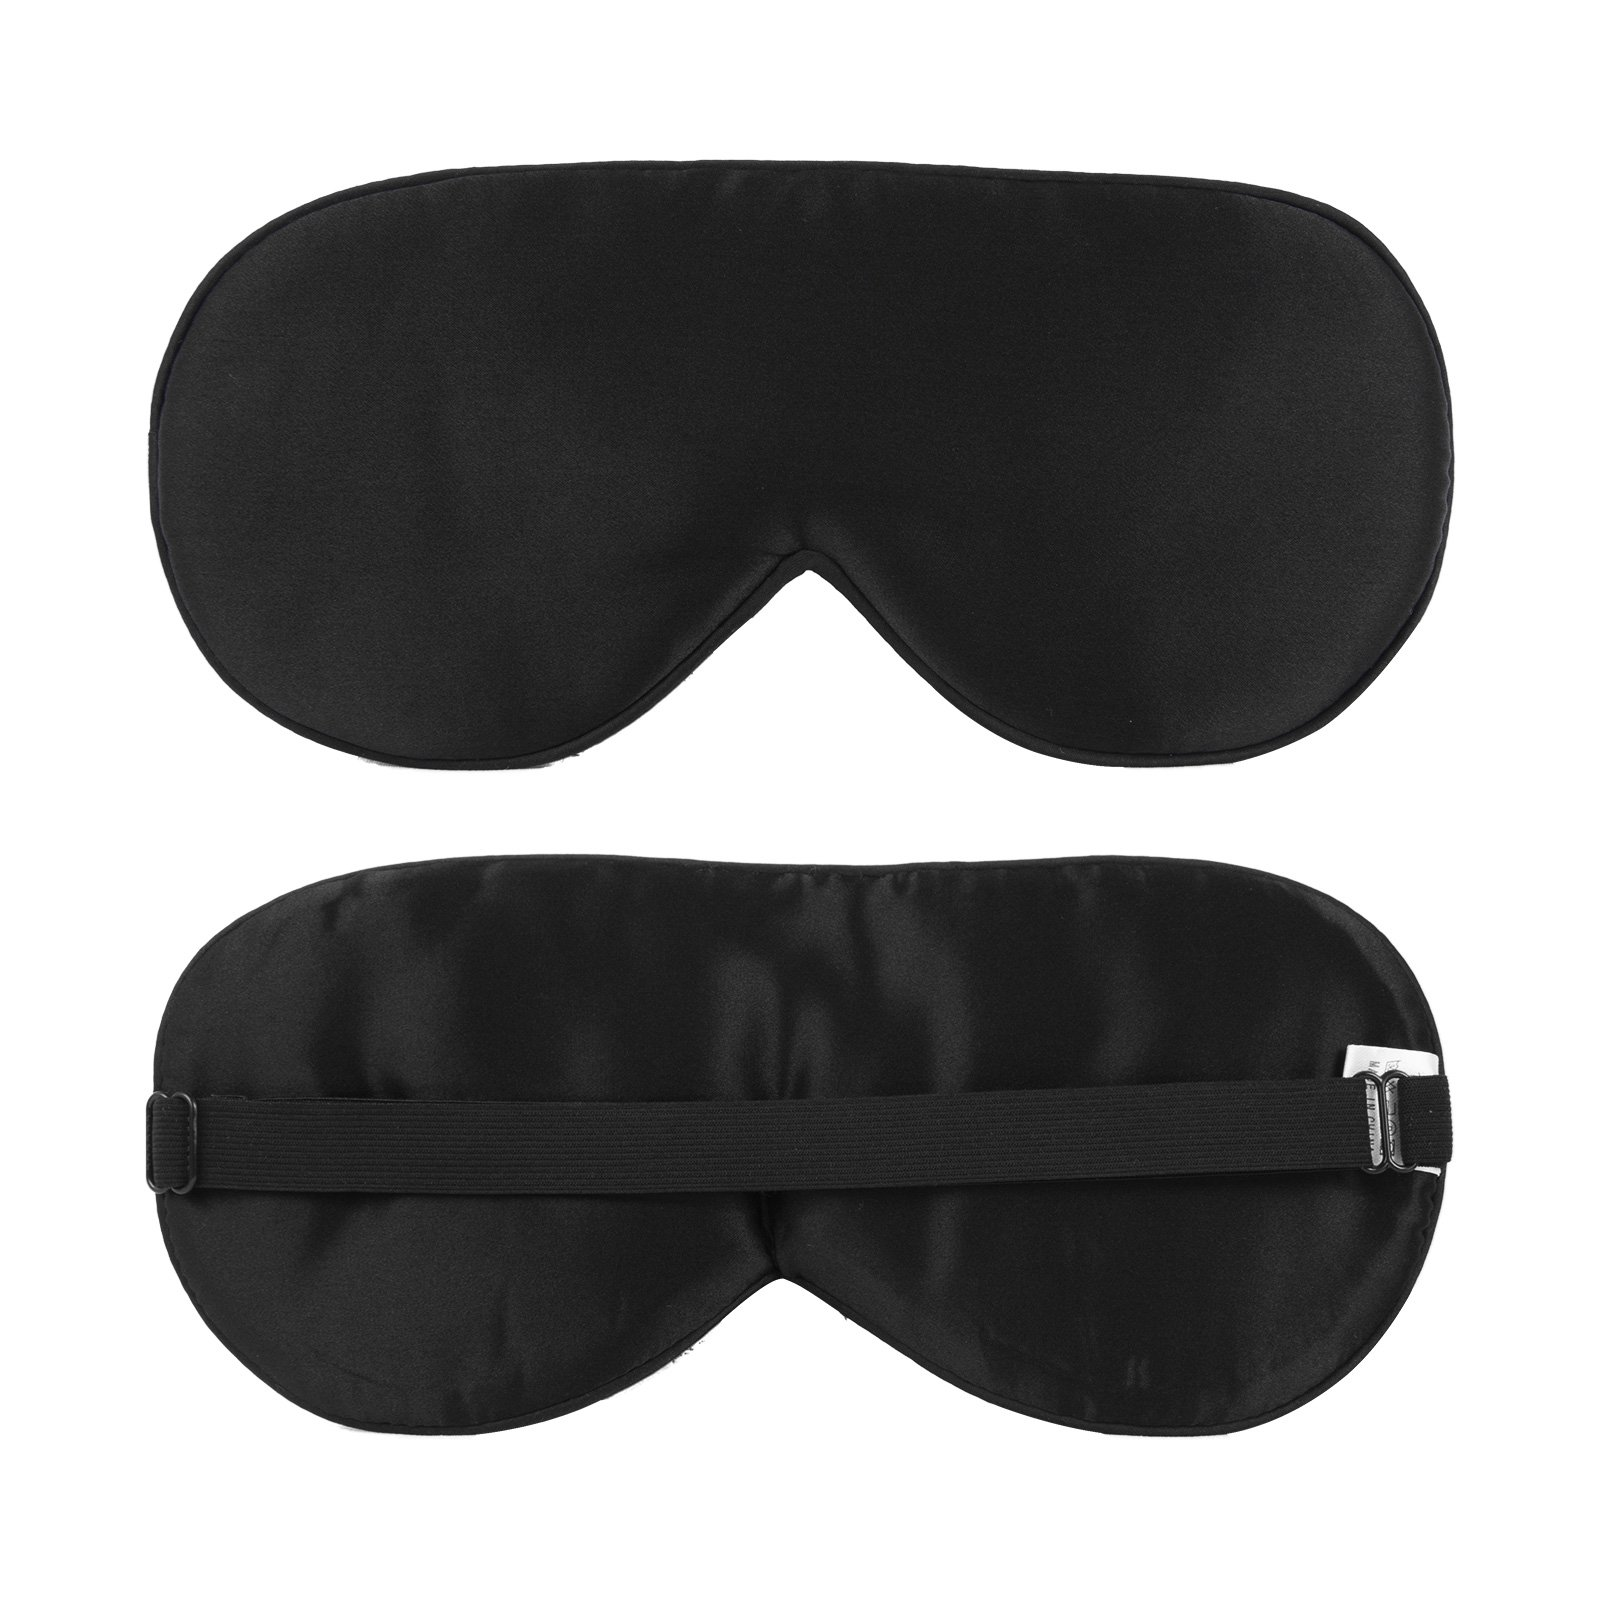 Silk Sleep Mask with Adjustable Strap for A Comfortable Whole Night Sleeping Lightweight and Super Soft Eye Mask Night Blindfold Eyeshade for Men Women Kids for Travel Airplane Shift Work Naps, Black